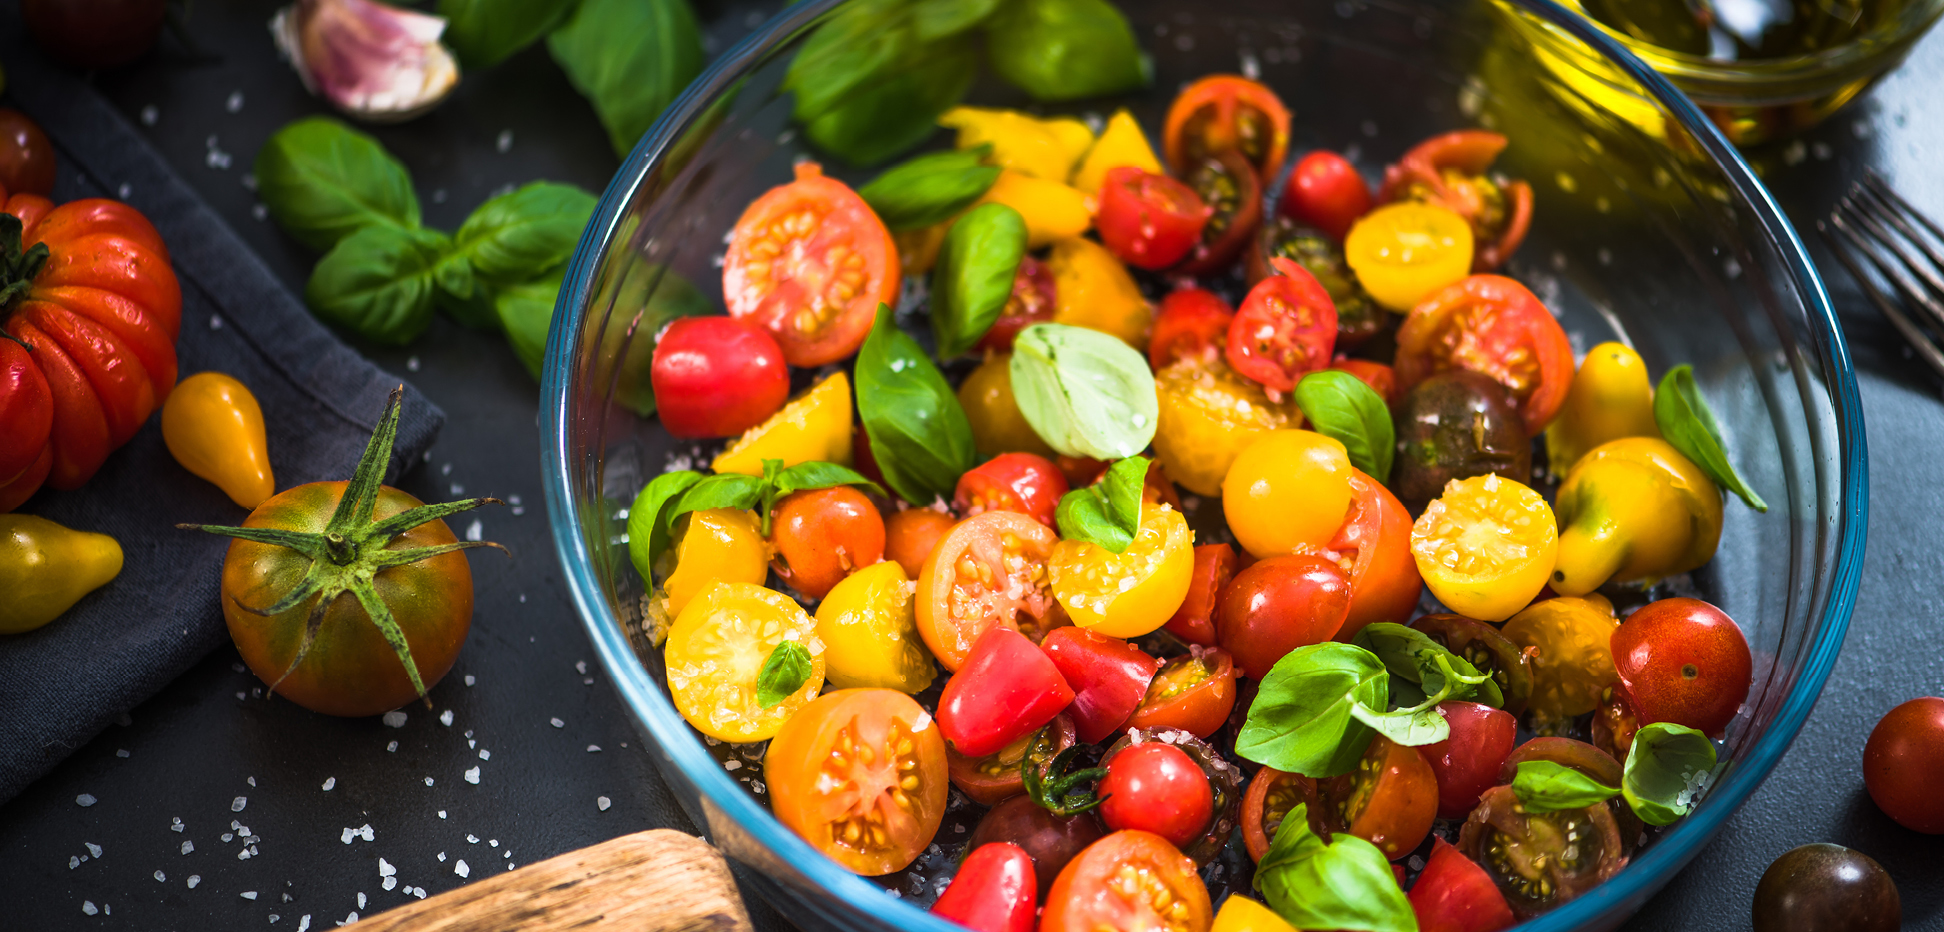 Glass bowl filled with bright colorful cherry tomatoes